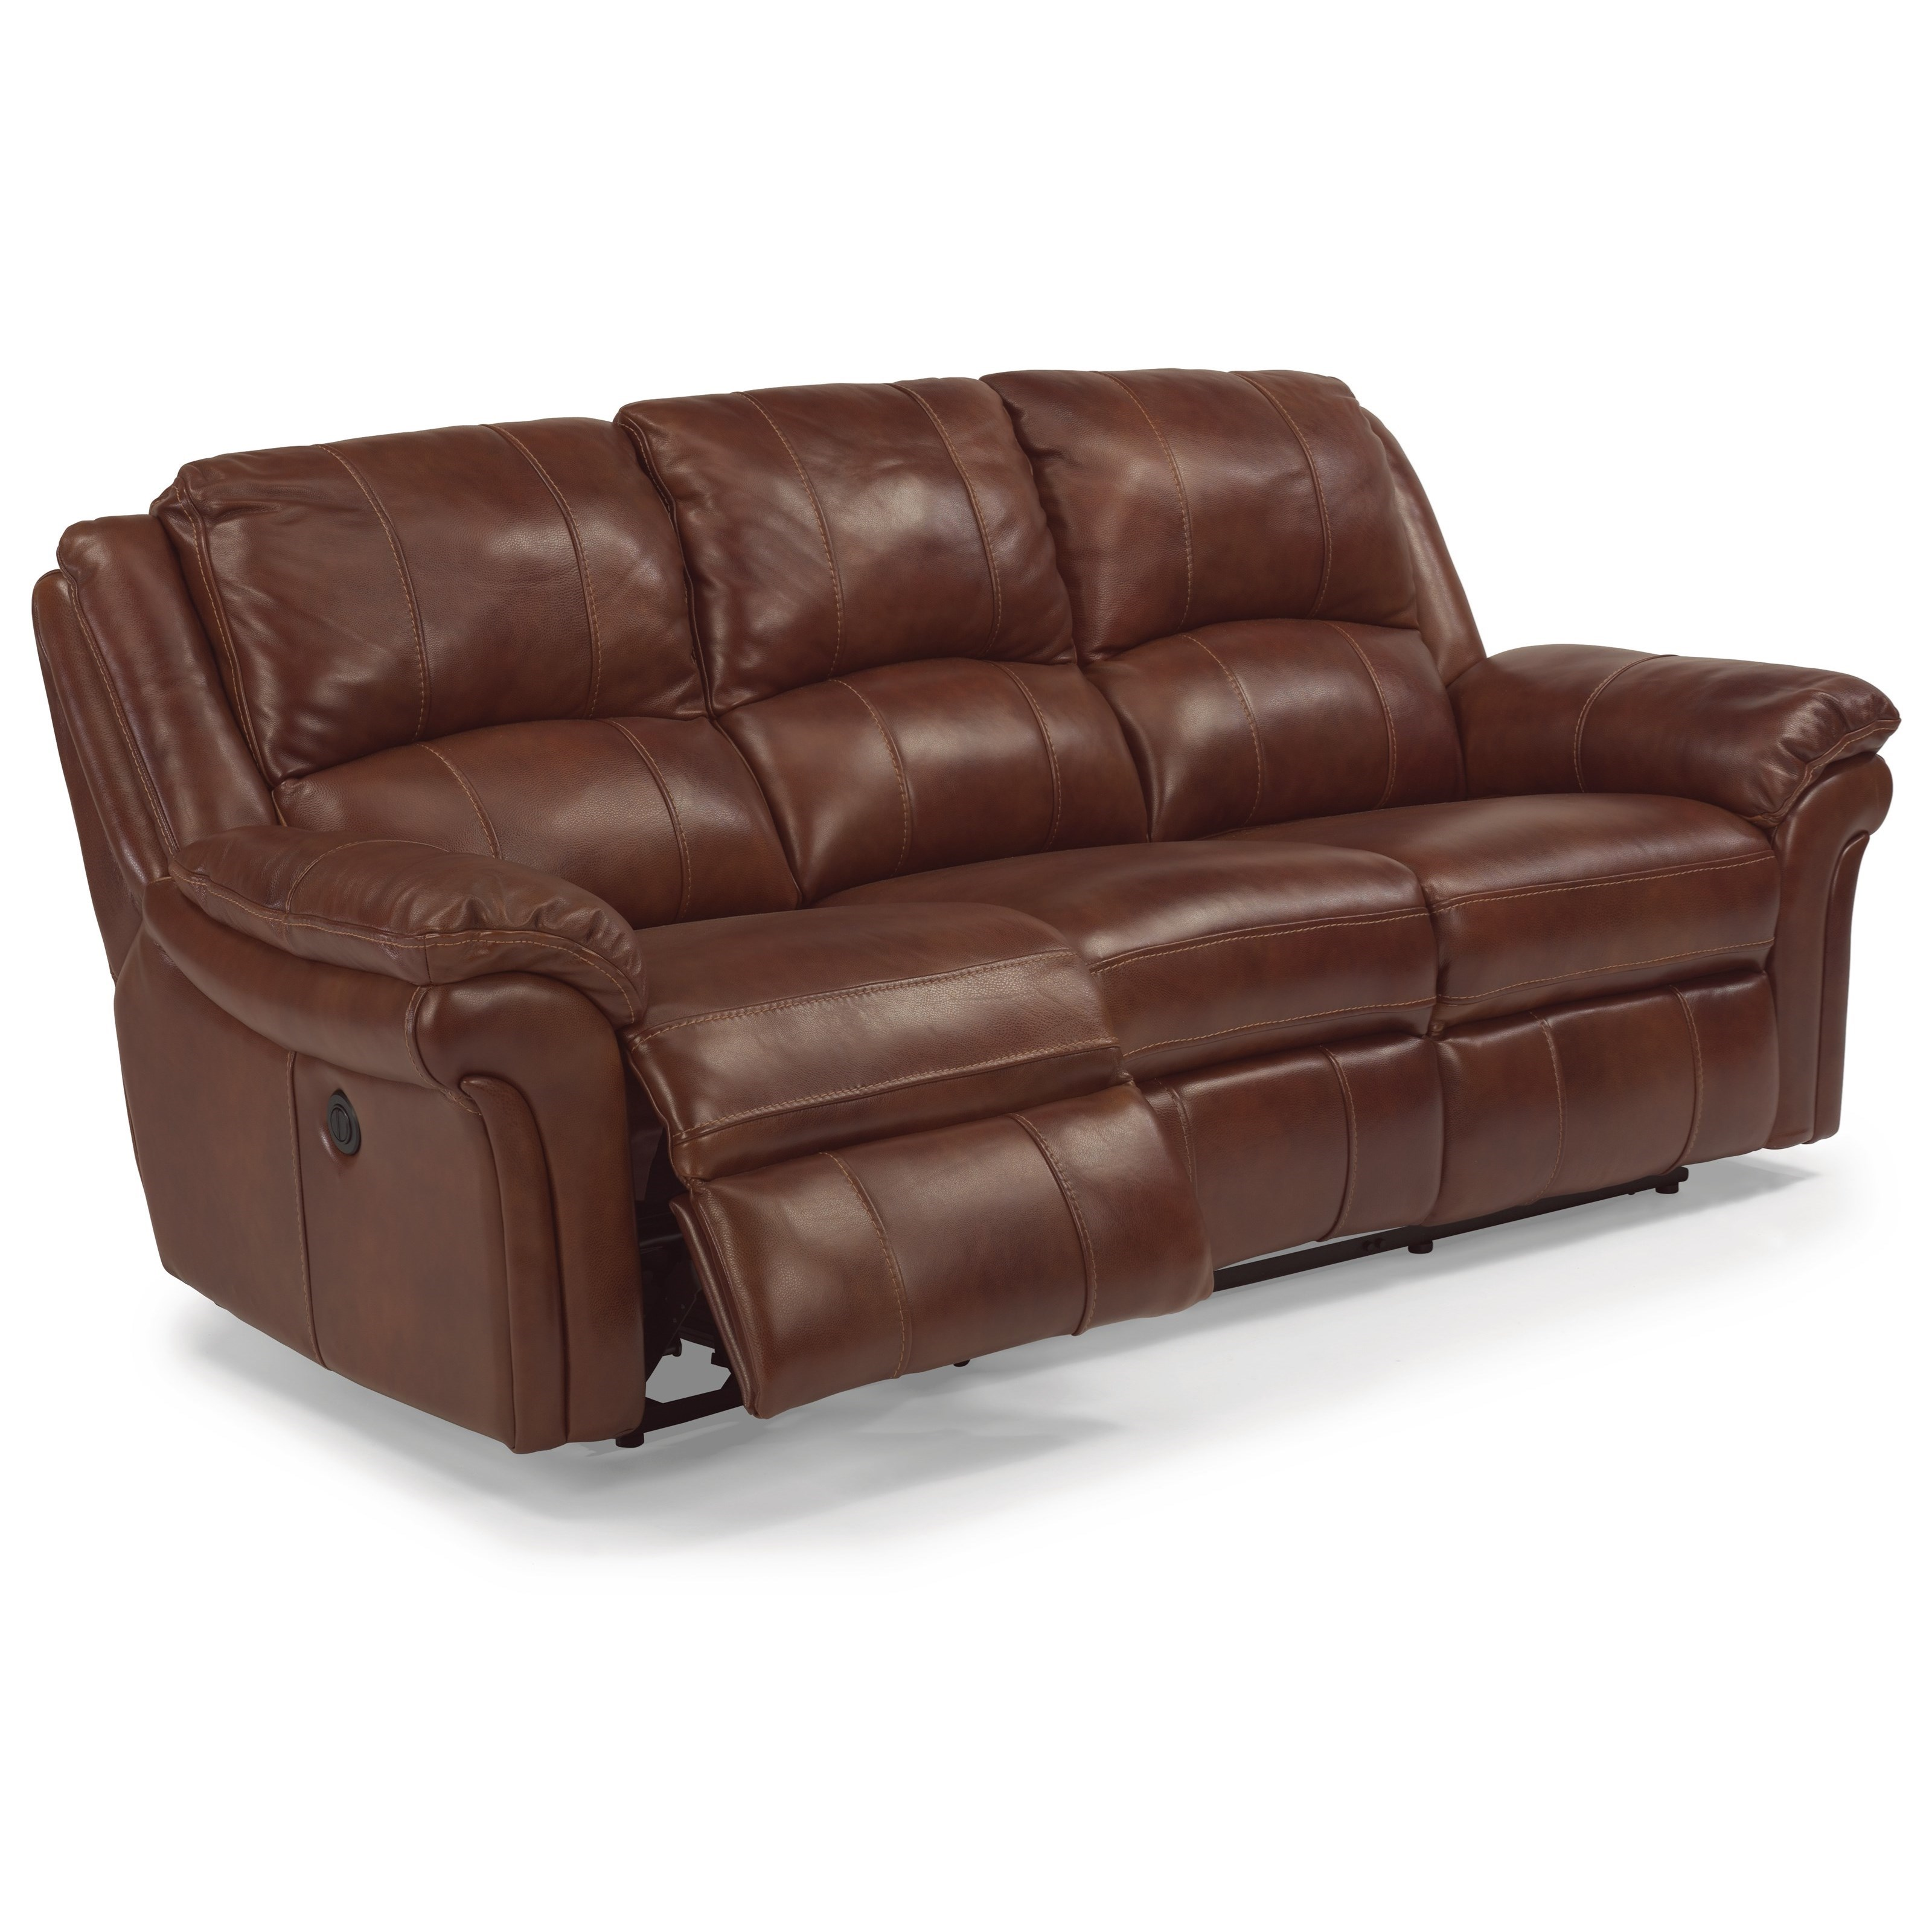 Selecting a quality flexsteel leather   reclining sofa